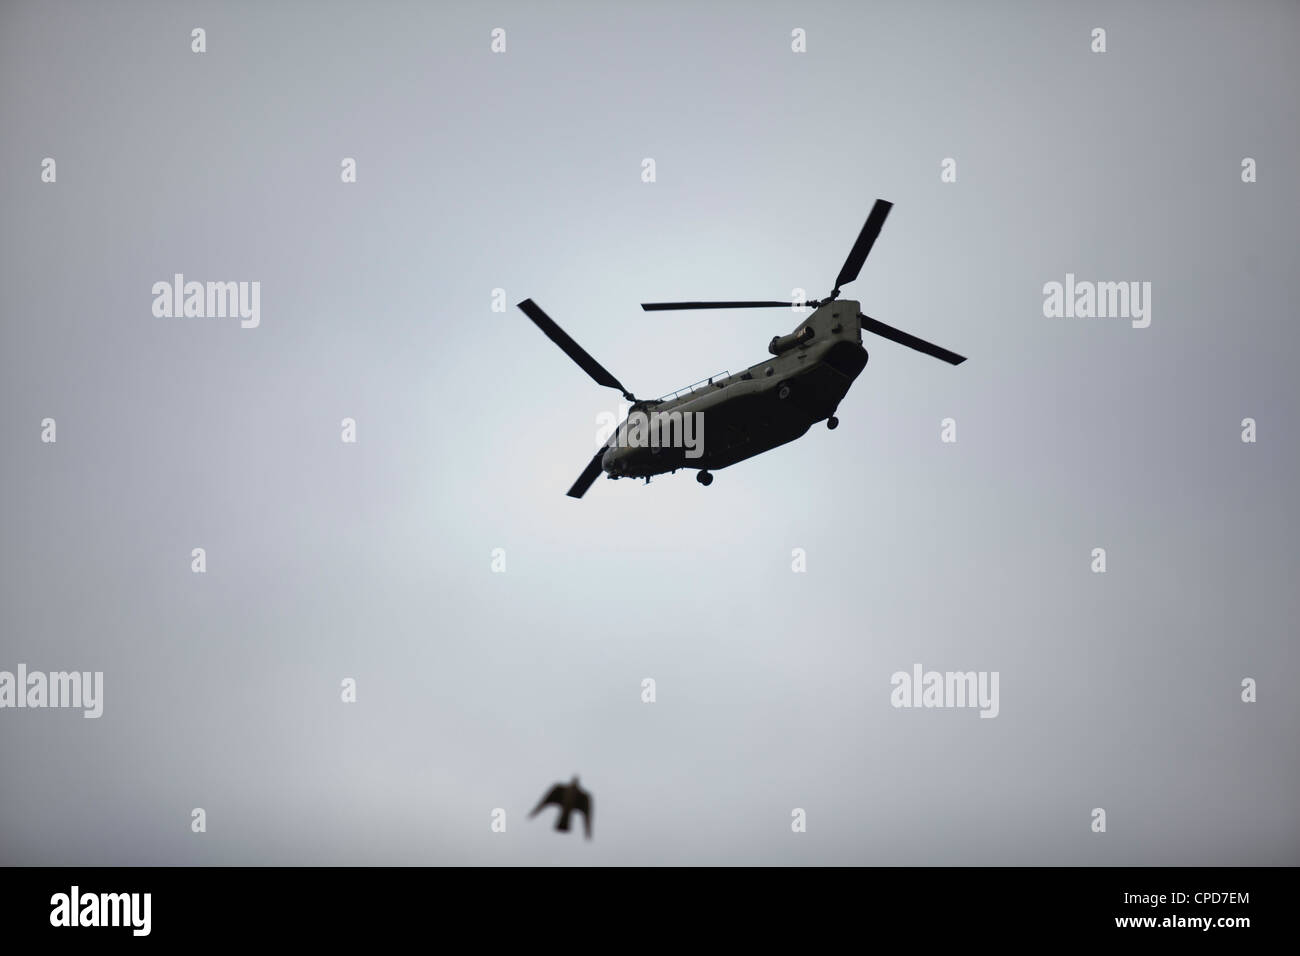 A military helicopter flying in the sky as a bird flies by - Stock Image